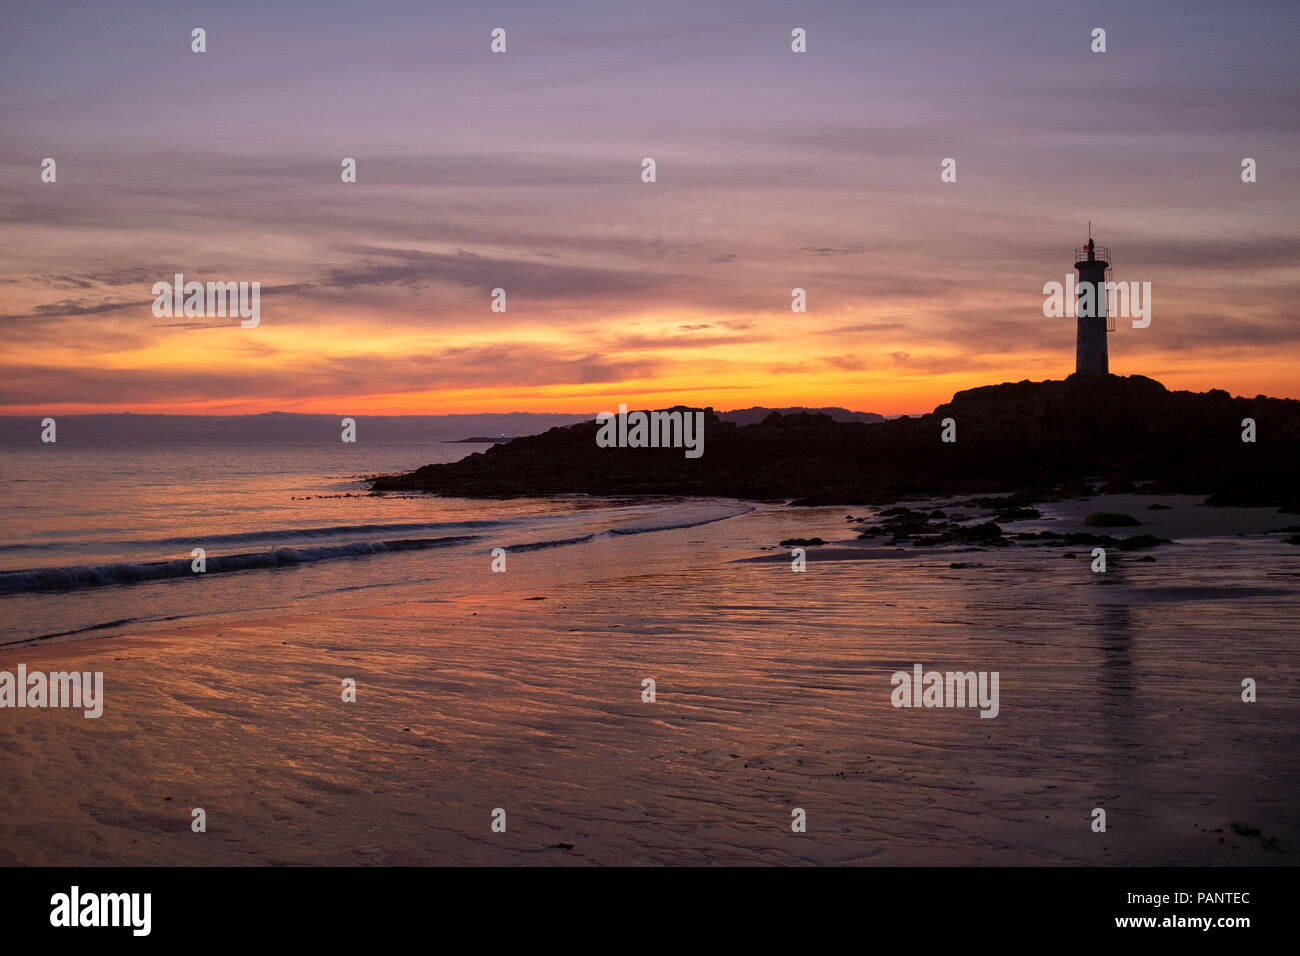 Silhouette of the lighthouse in Playa do Lago, Muxia, Galicia, Spain - Stock Image